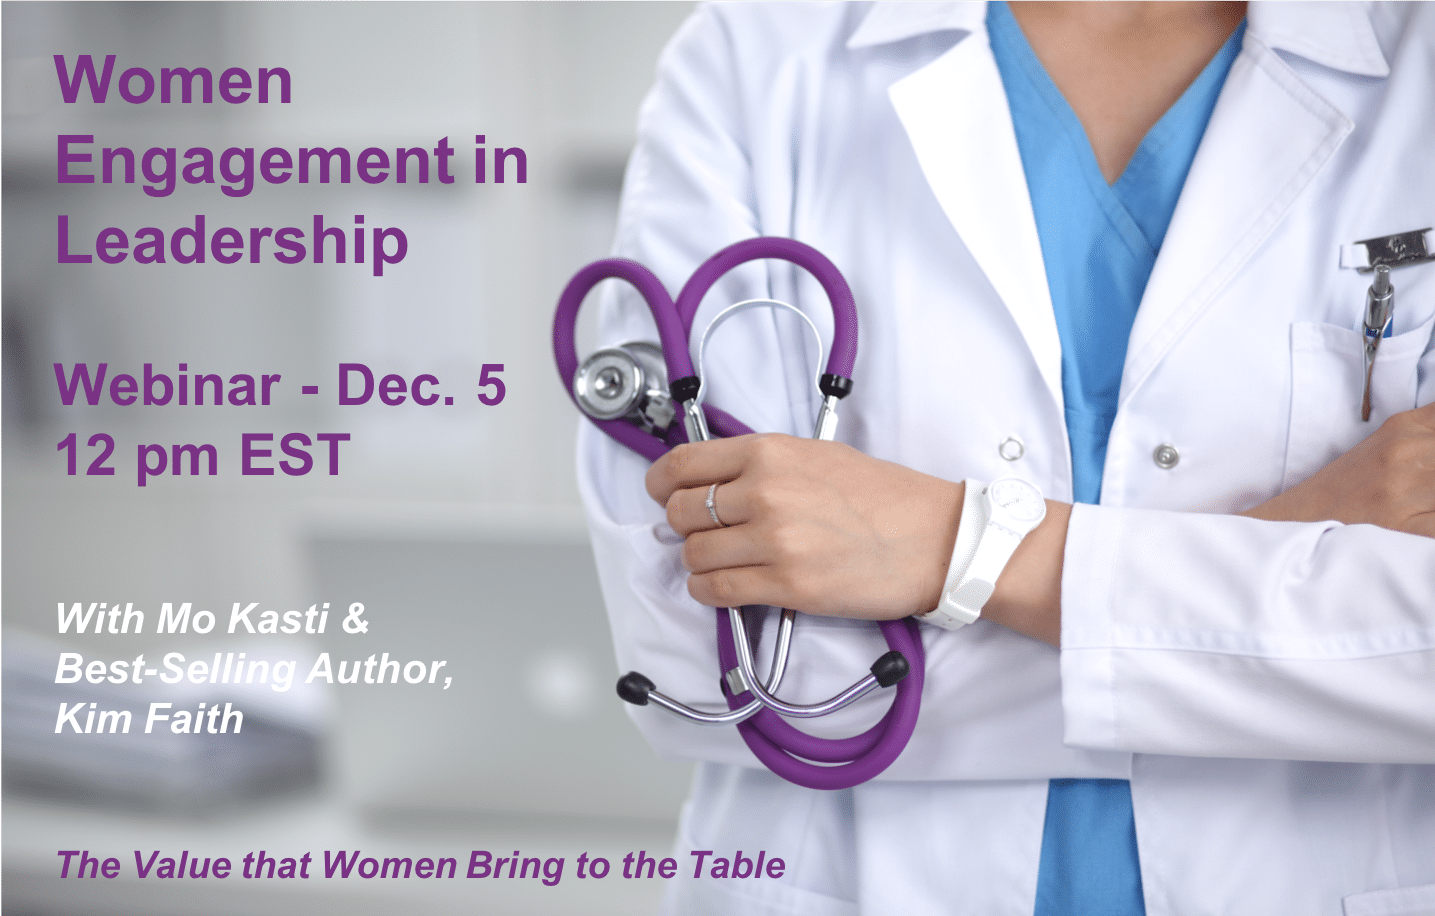 Women Engagement in Leadership | Physician Leadership Engagement